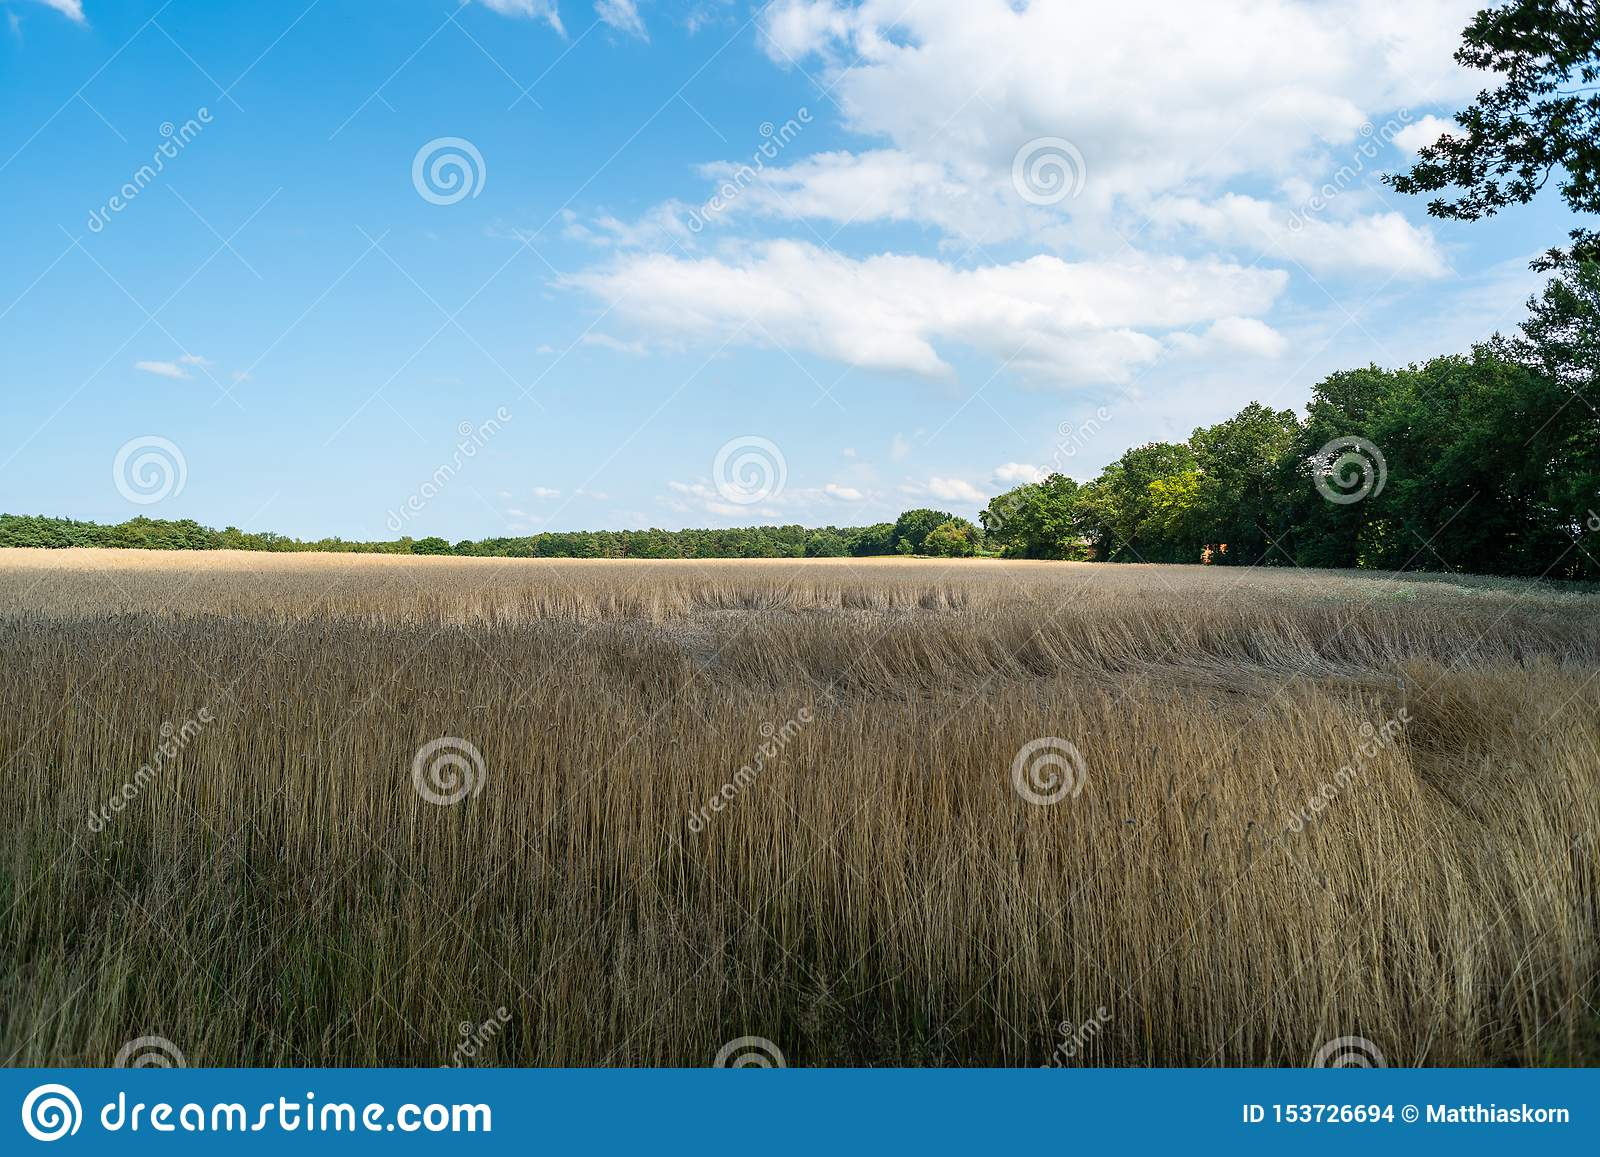 A shining cornfield with blue sky and light clouds